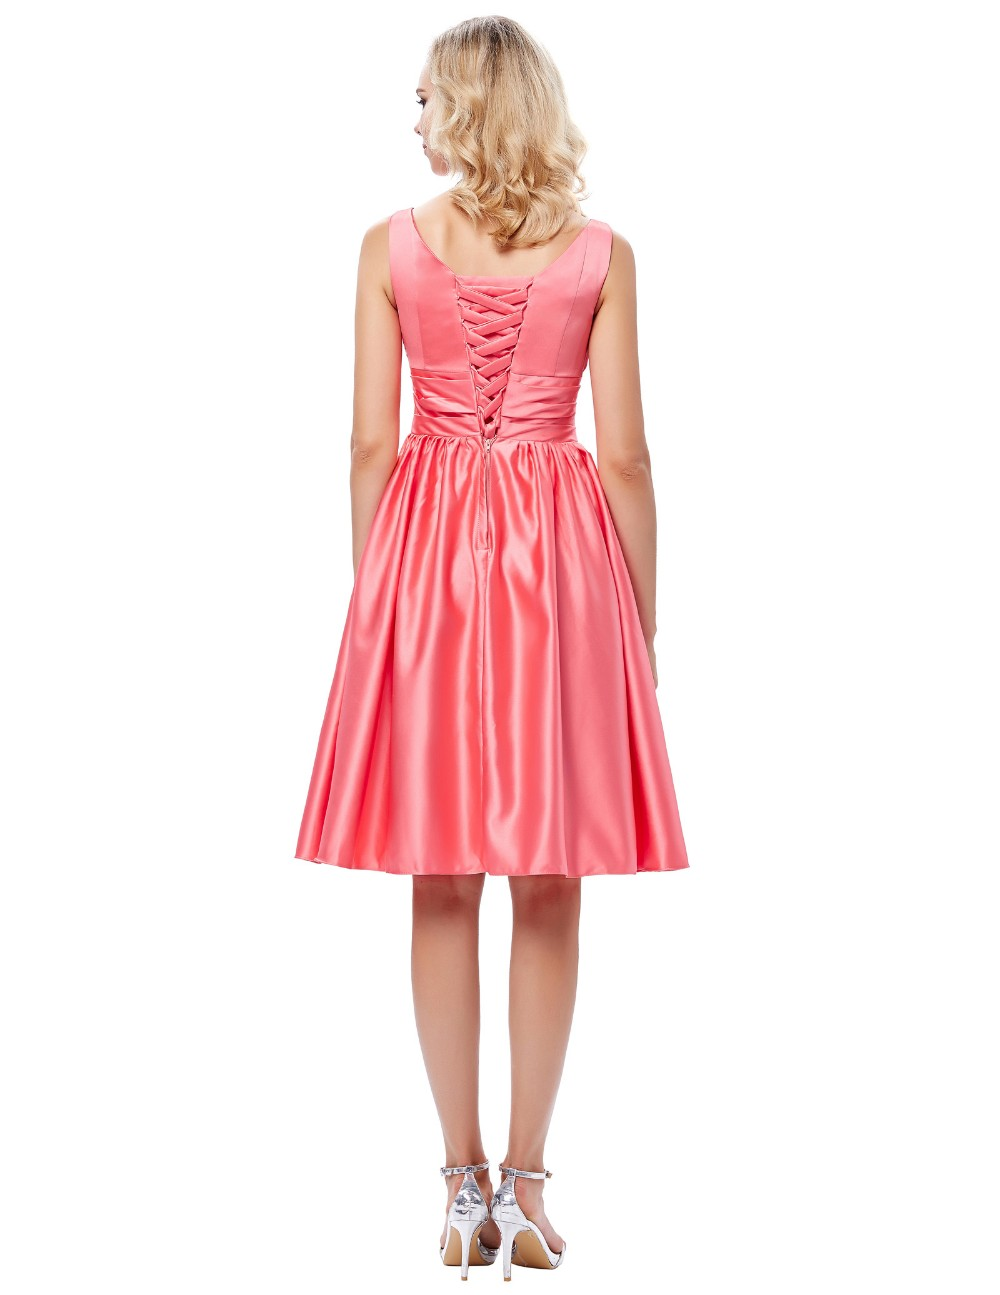 Grace Karin Sexy Sleeveless V-Neck Satin Watermelon Color Prom Party Dress Short Homecoming Dress Under 100 GK000126-1